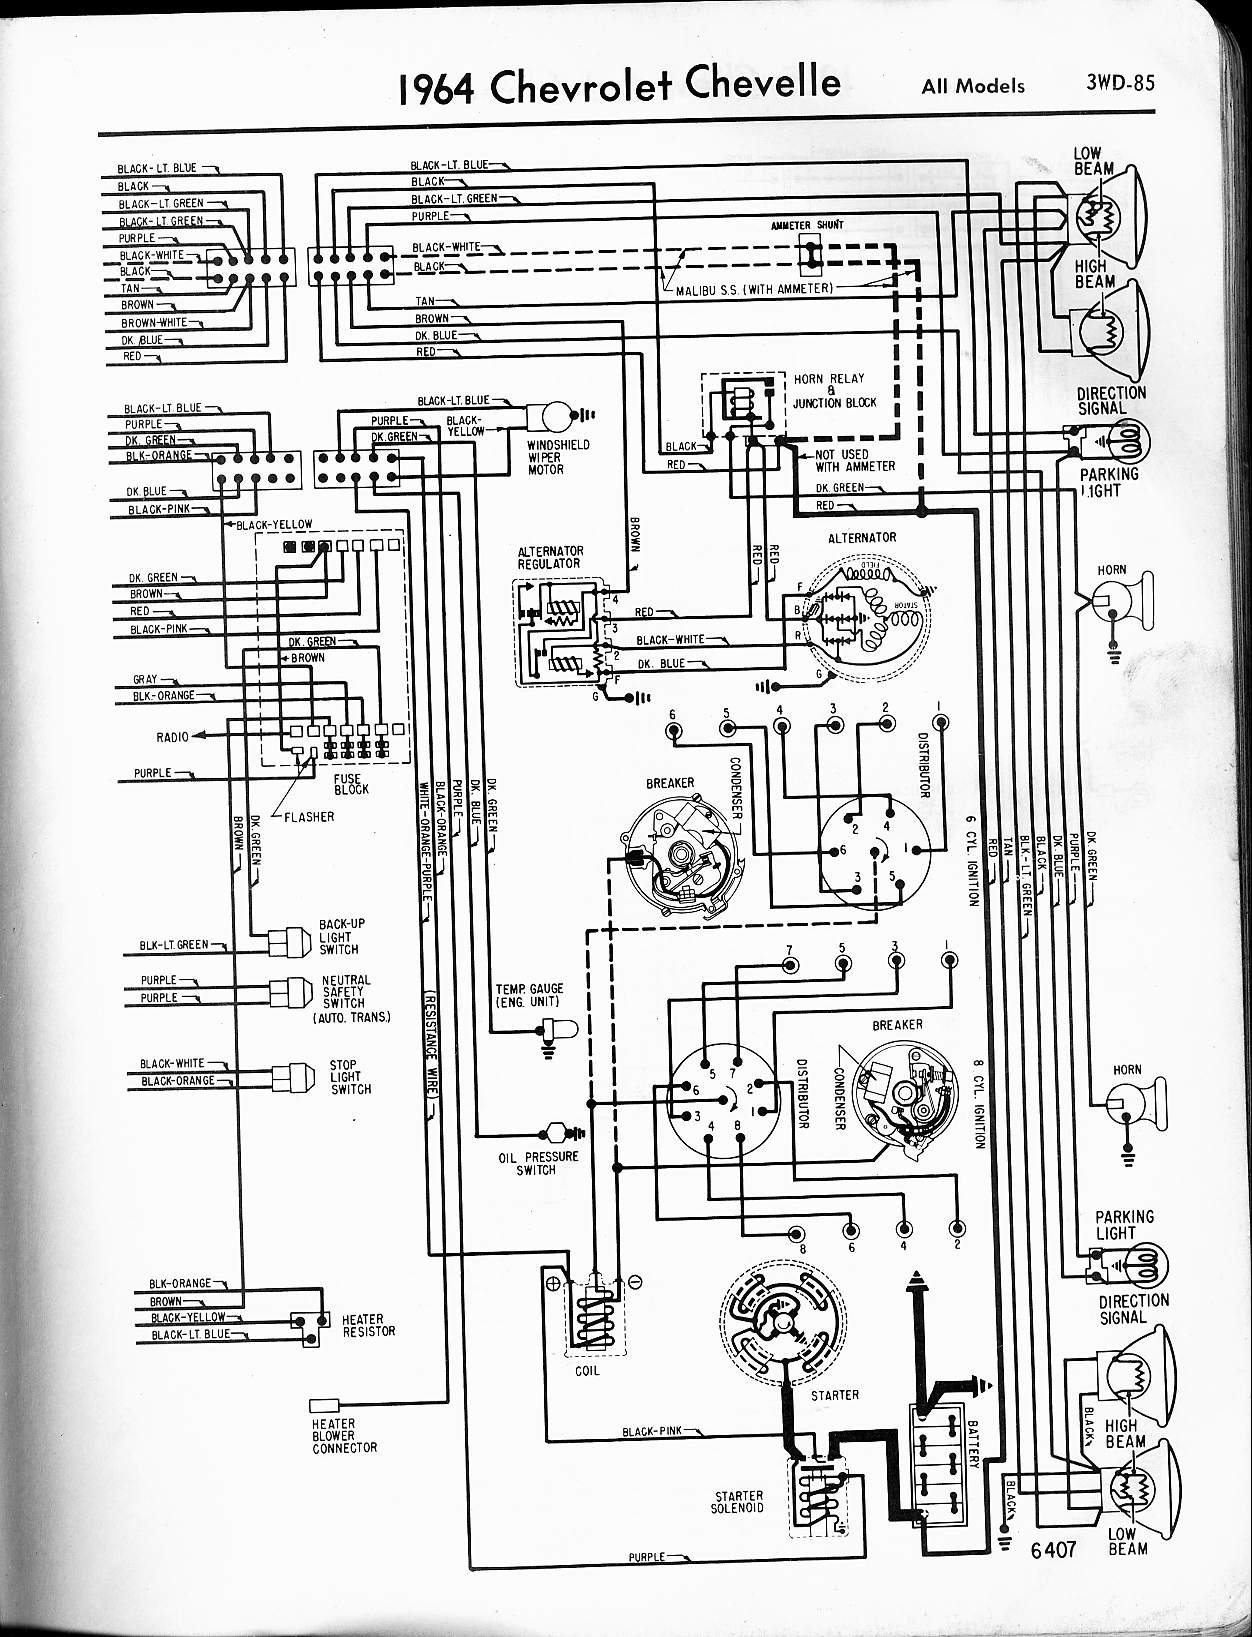 1969 GM Coil Wiring Library. Ignition Coil Wiring Diagram 65 Chevelle Opinions About 2001 Chevy Truck 1968 Impala. Wiring. Ignition Coil Wiring Diagram 1968 At Scoala.co